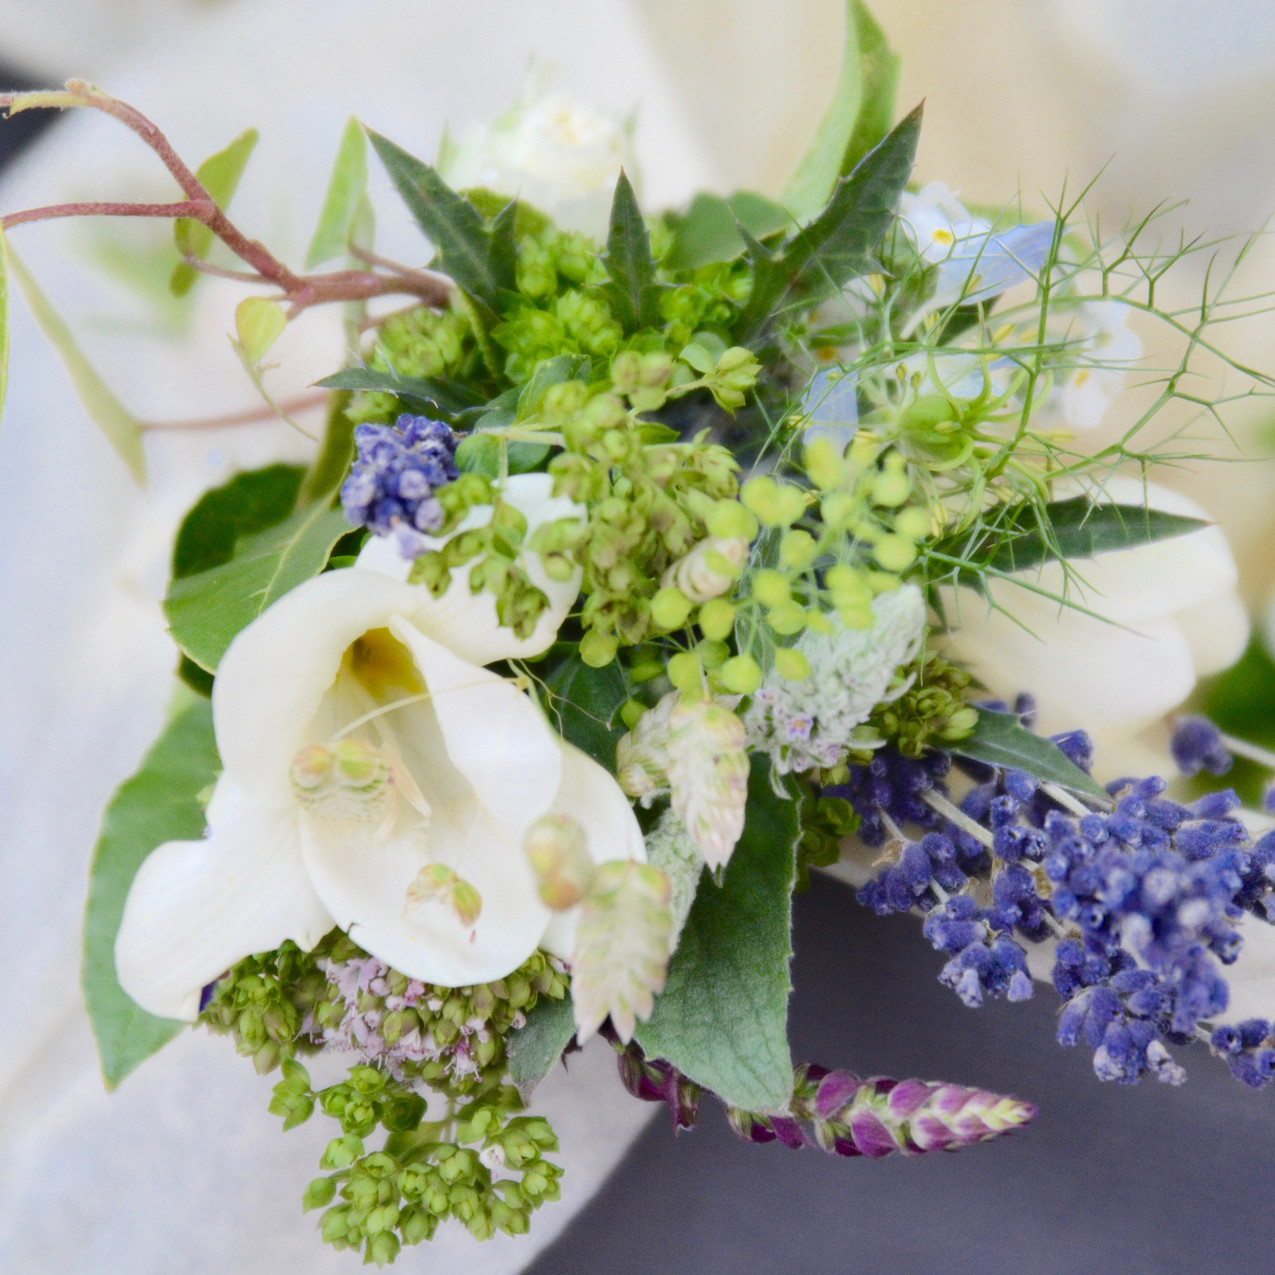 Ladies lapel corsage of herbs, freesias, lavender and ivy